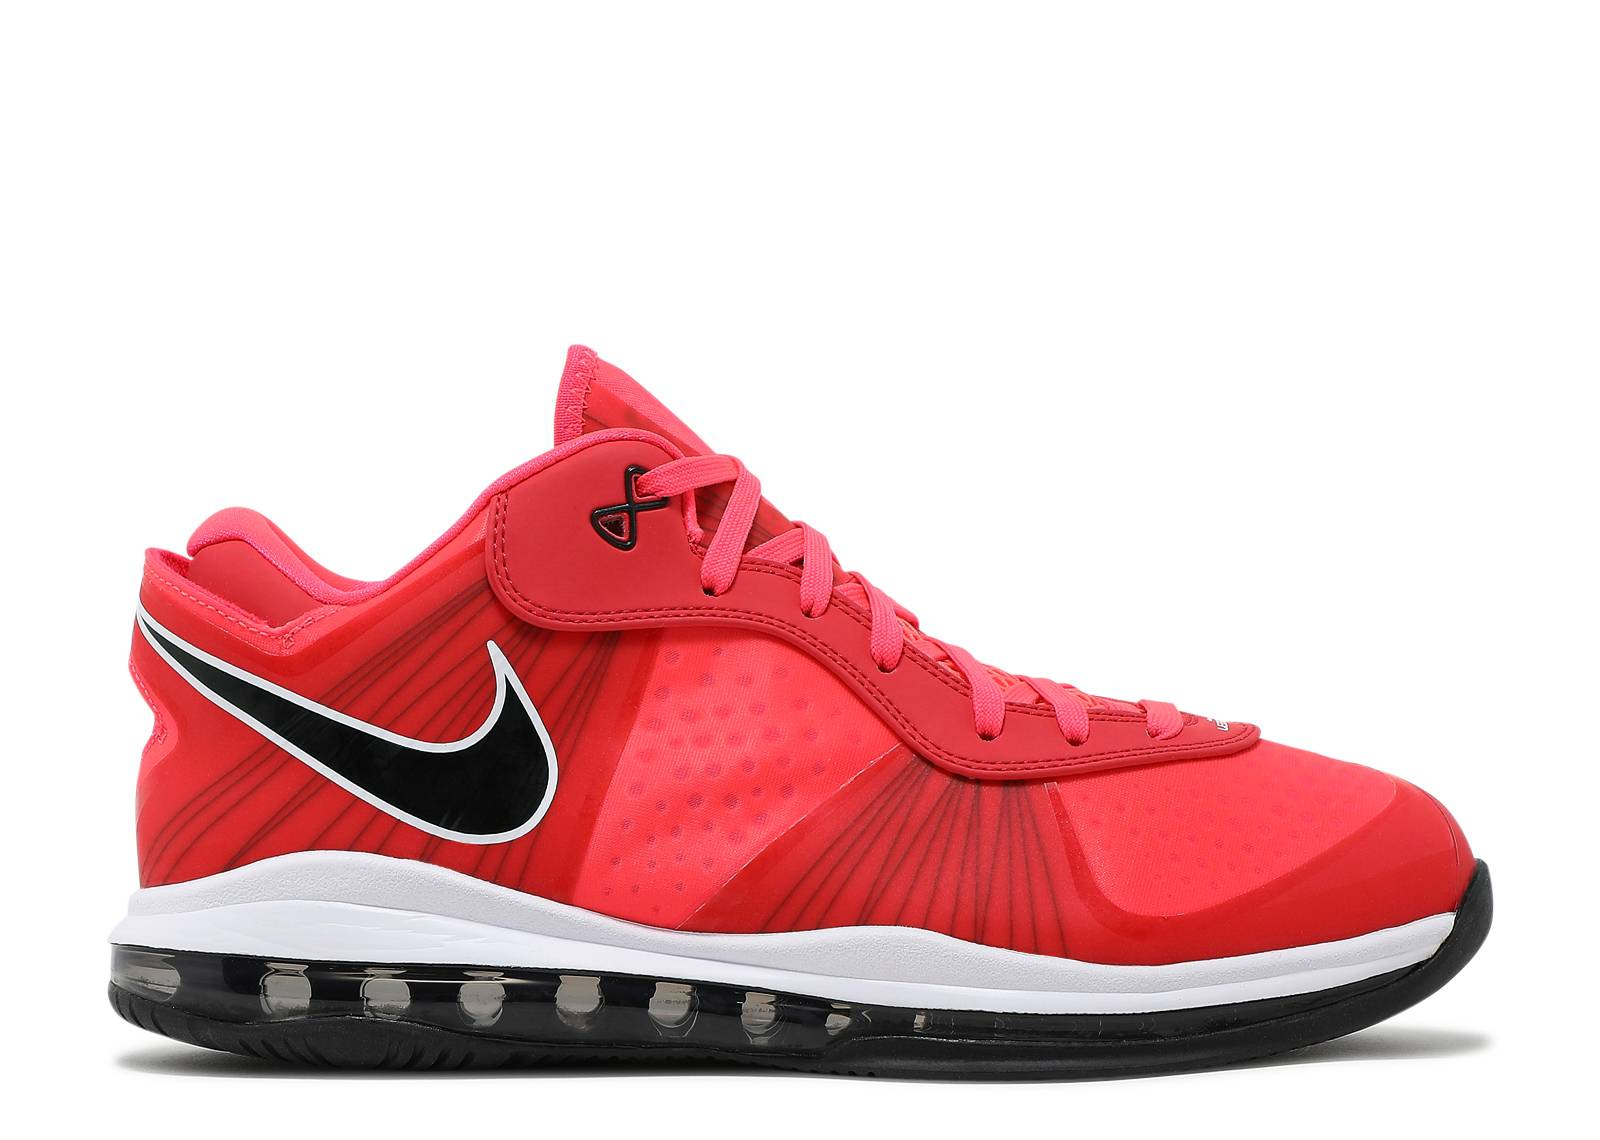 Nike LeBron 8 V\/2 Low Solar Red Sneakers (Solar Red/Solar Red-Black-White)